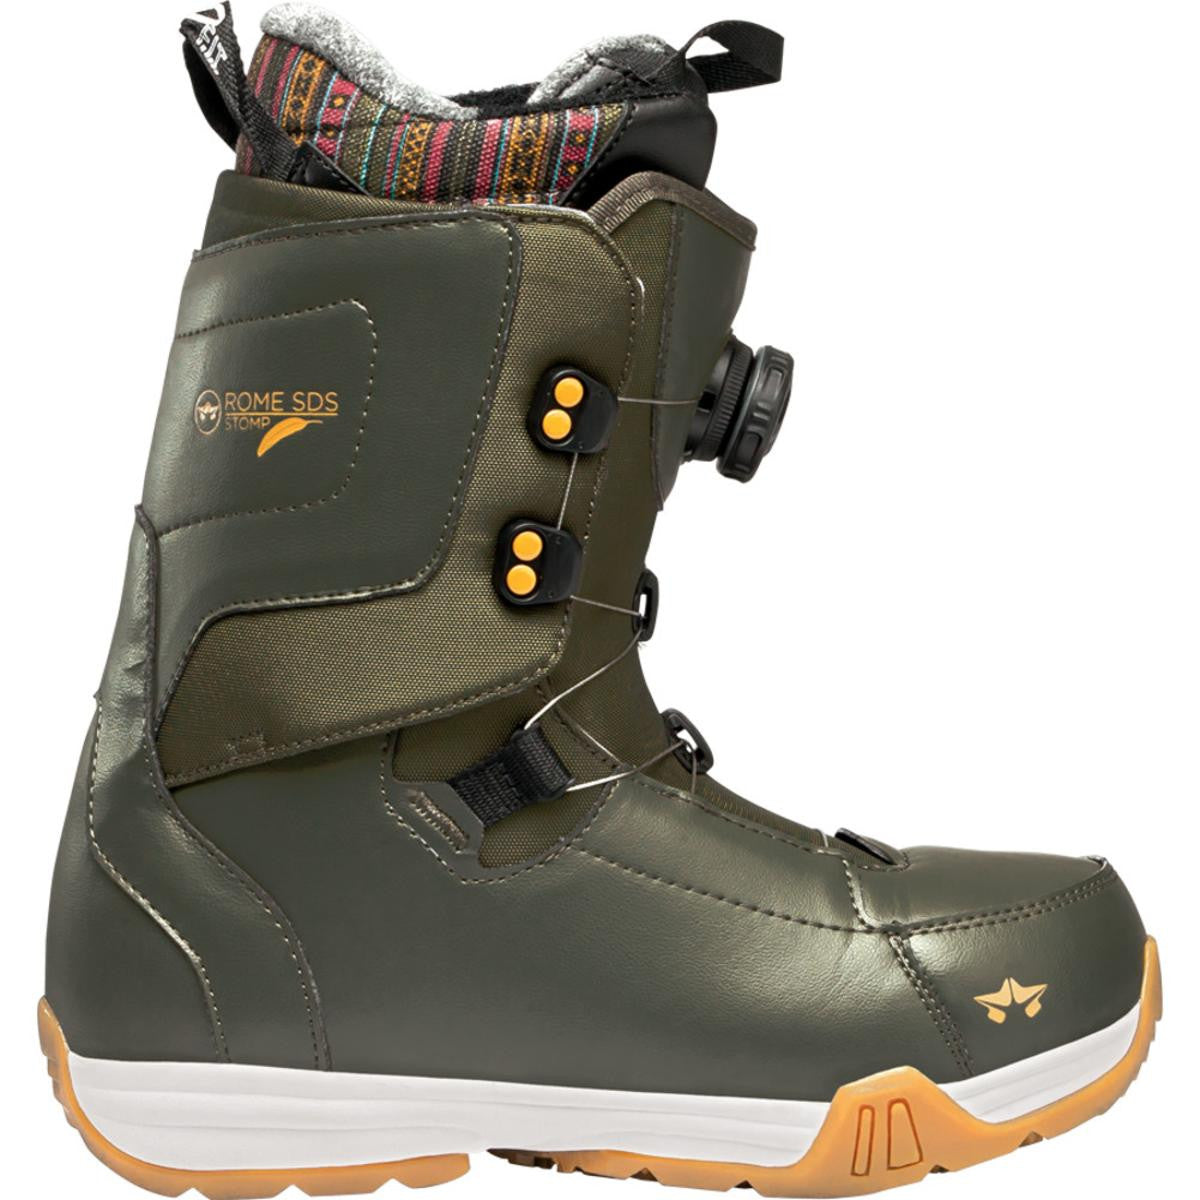 Rome SDS Stomp Snowboard Boots Women's Olive 7 Womens